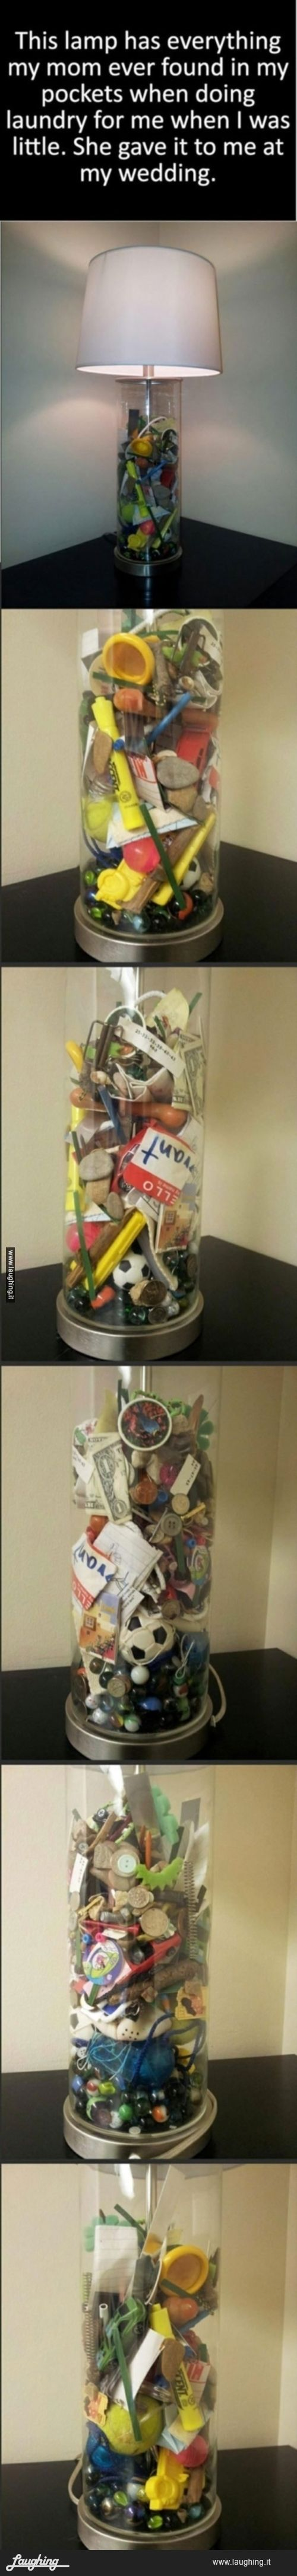 Coolest gift ever! A mom saved everything she ever found in her sons pockets and put it all in a clear lamp. She gave it to him as his wedding. This would awesome for a wedding gift or a moving out/going away to college gift.